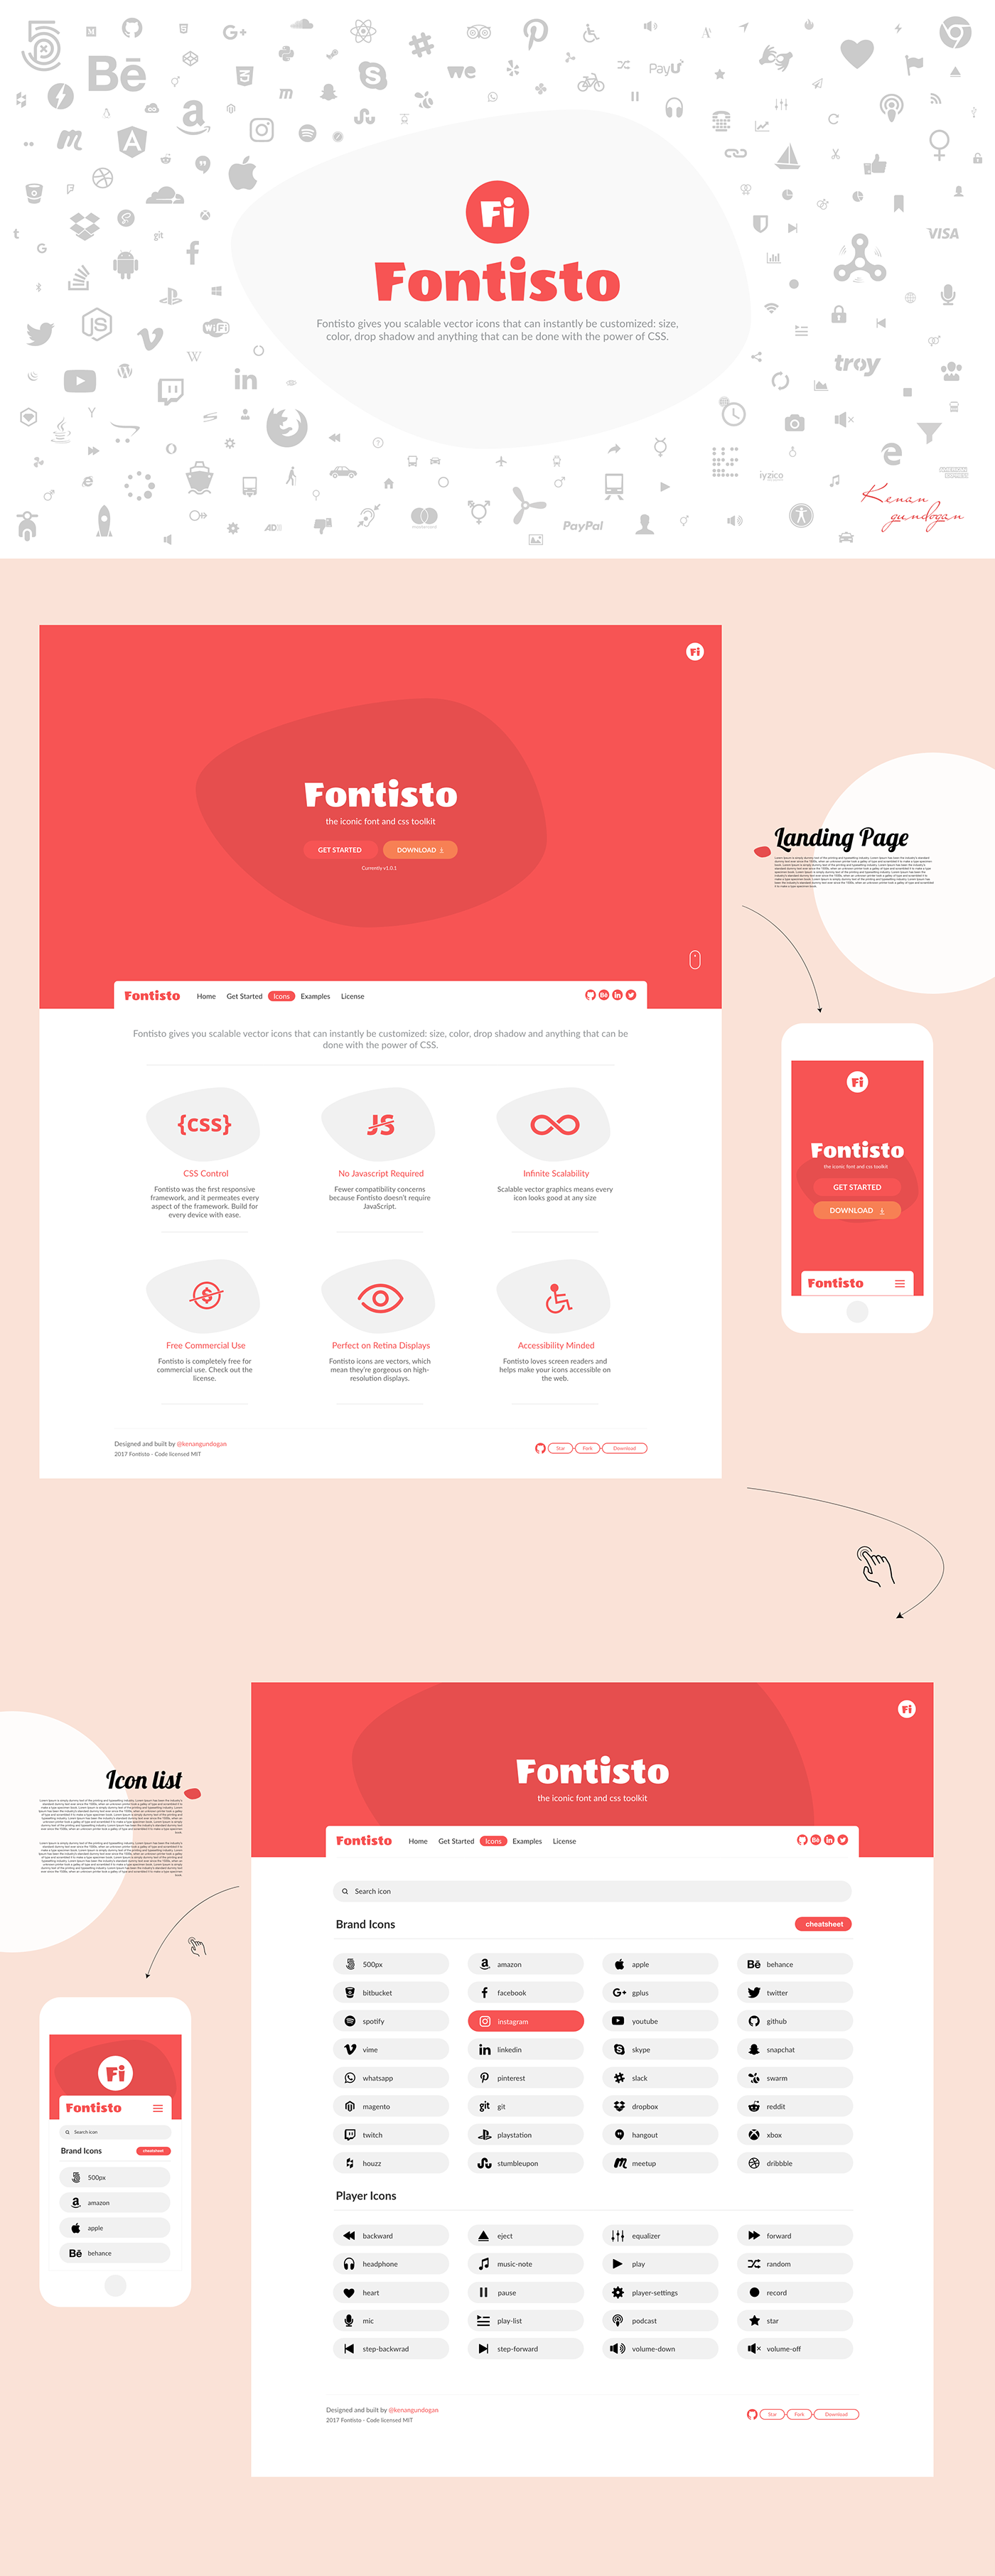 font Icon font icon icon font web font icon set icon pack icon library